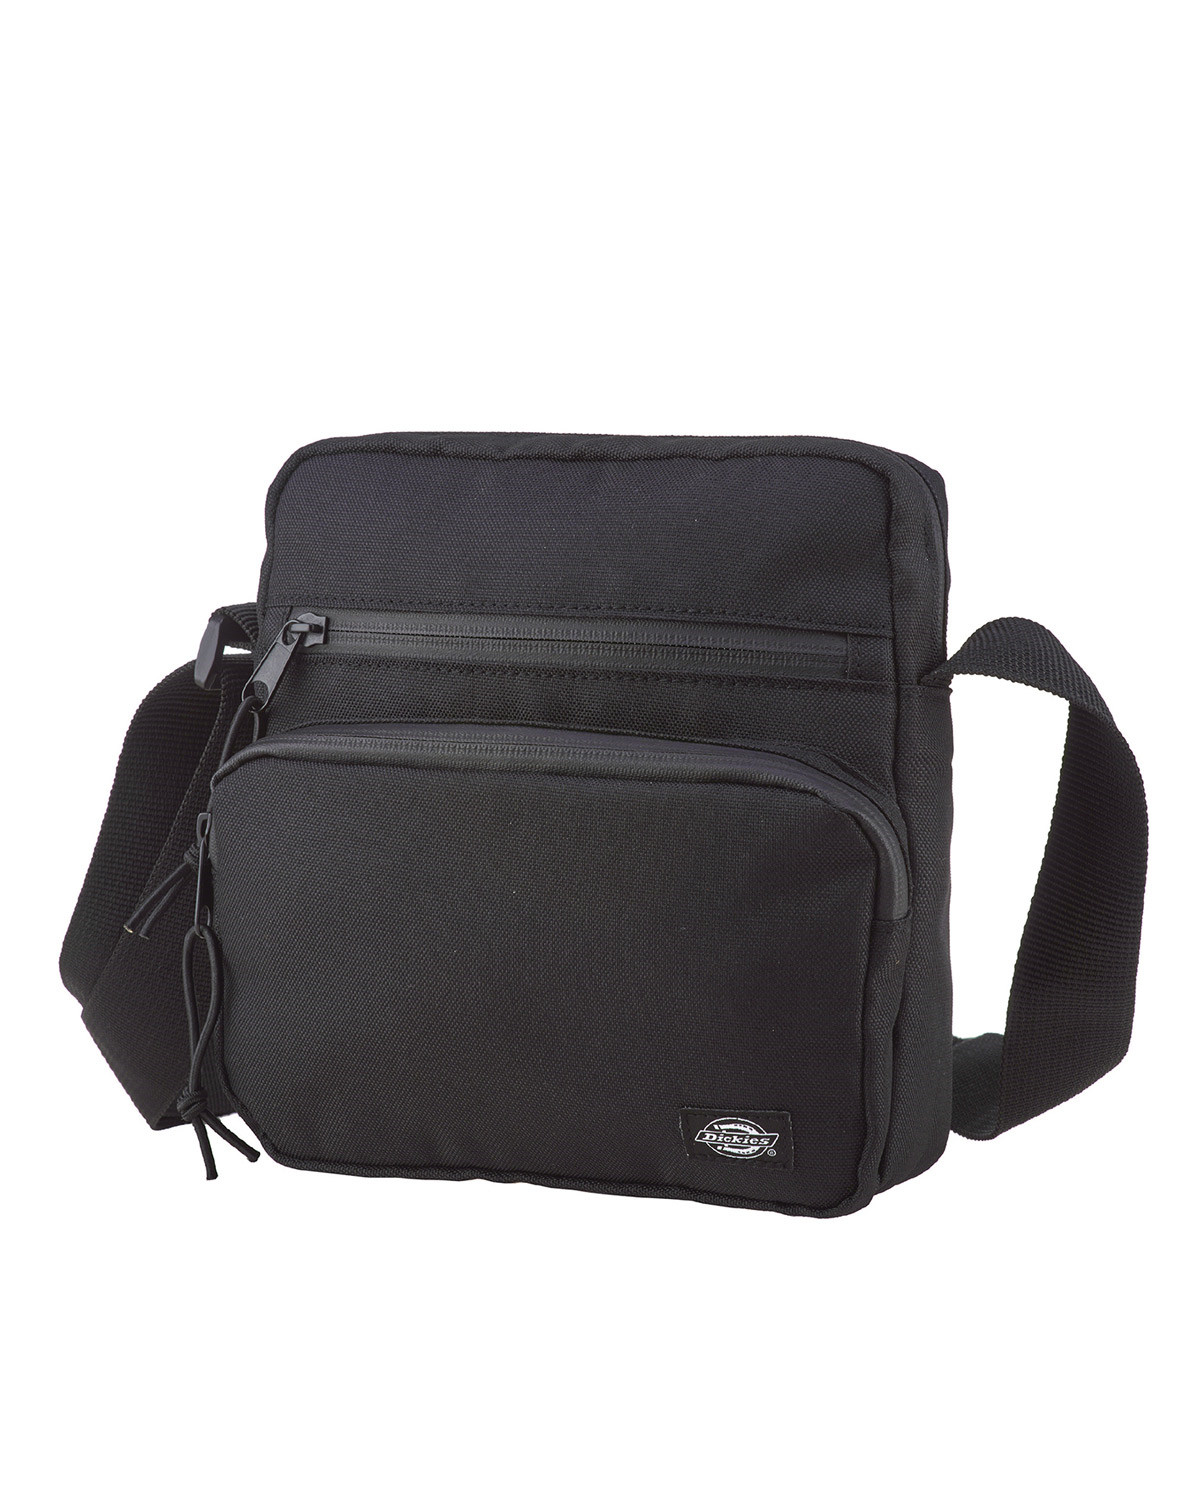 Dickies Newburg Duffle Bag